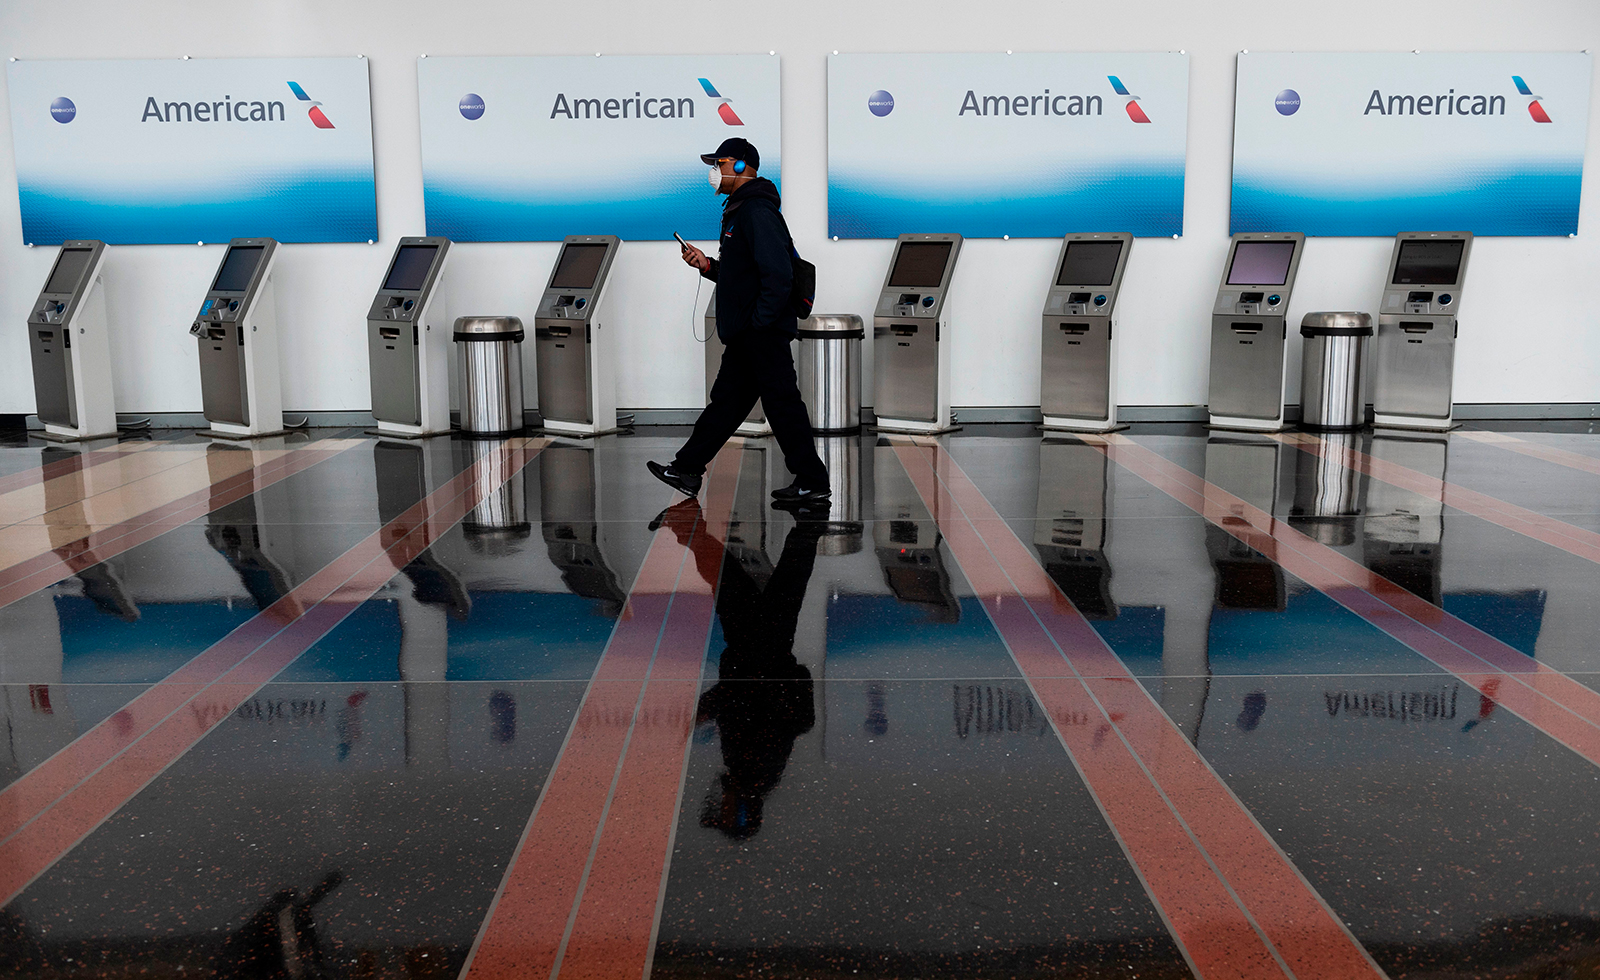 A passenger walks past empty American Airlines check-in terminals at Ronald Reagan Washington National Airport in Arlington, Virginia, on May 12.